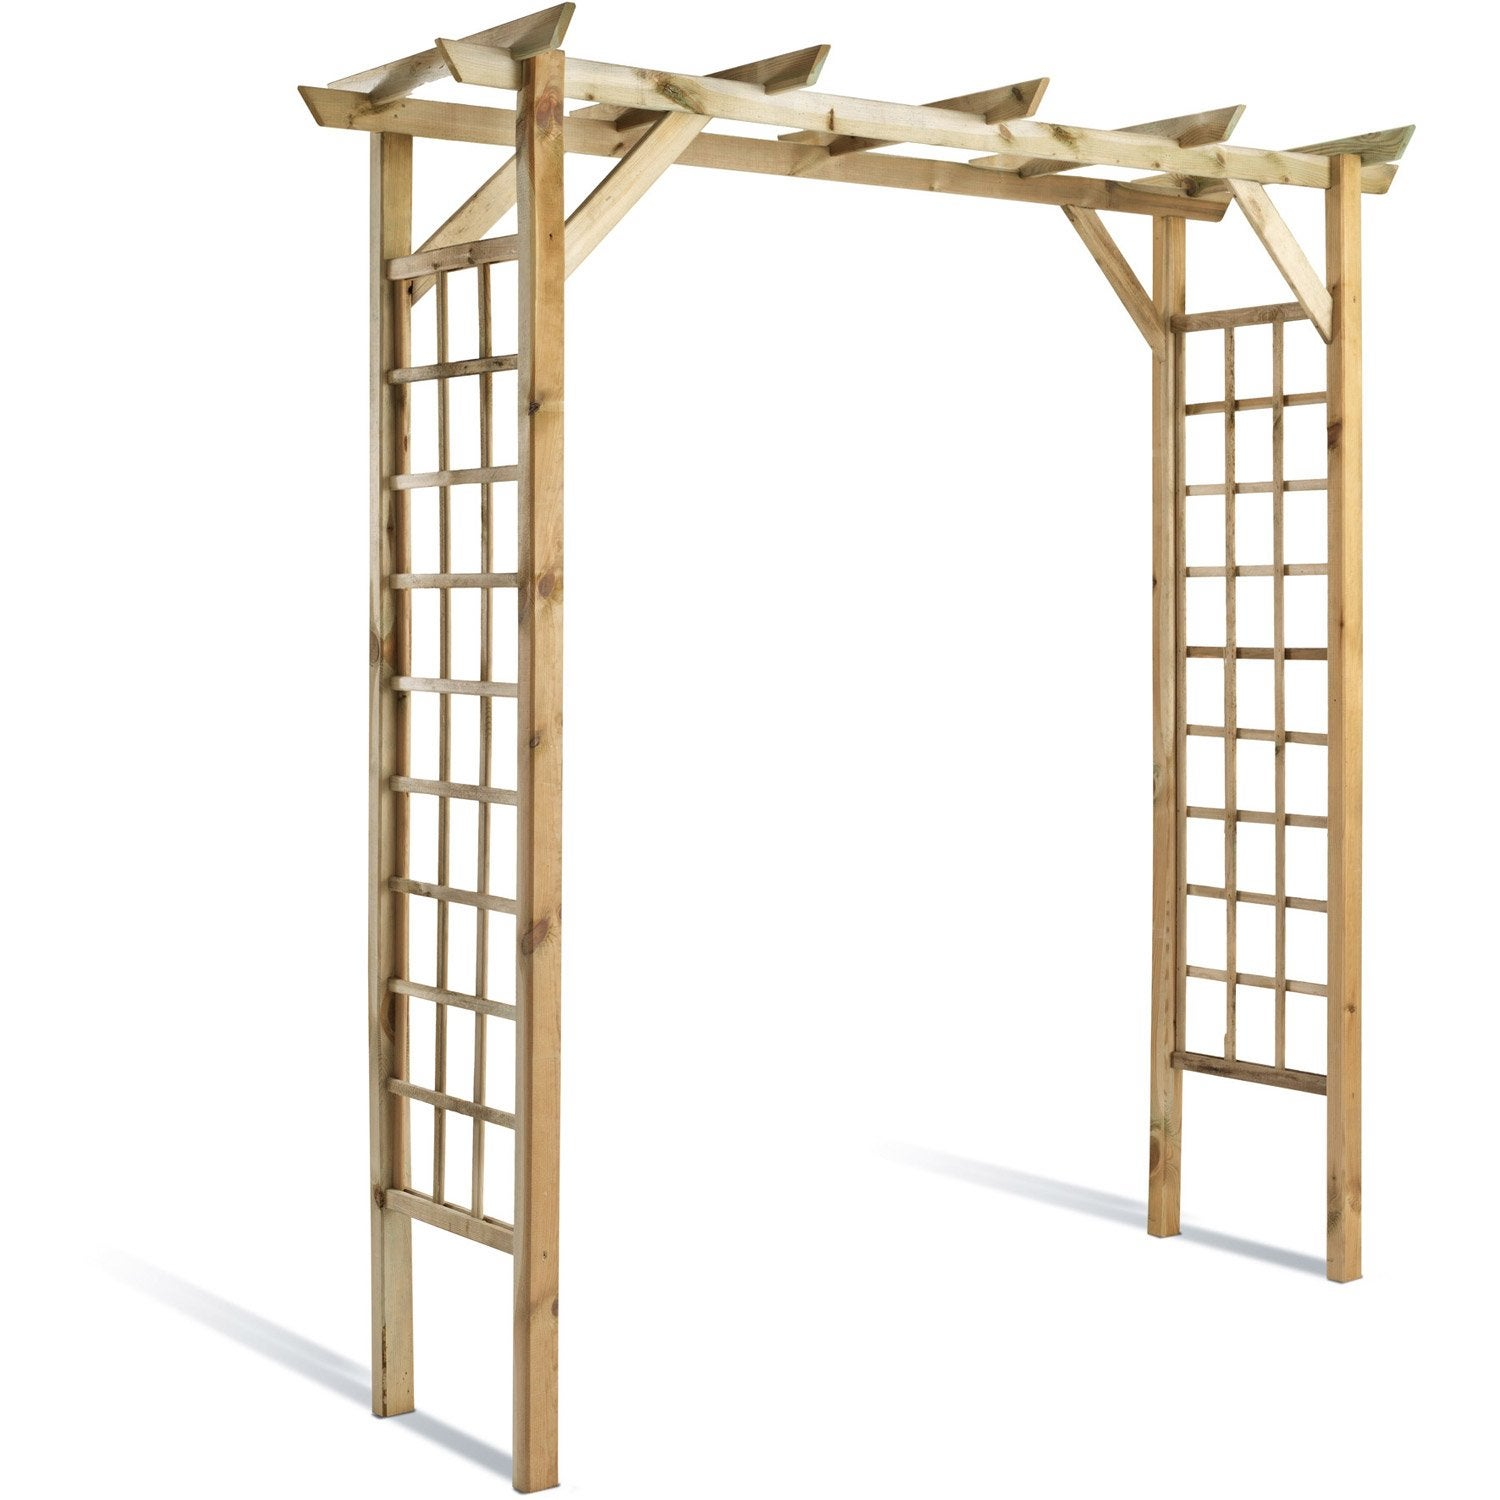 pergola bois leroy merlin pergola bois leroy merlin sur enperdresonlapin. Black Bedroom Furniture Sets. Home Design Ideas